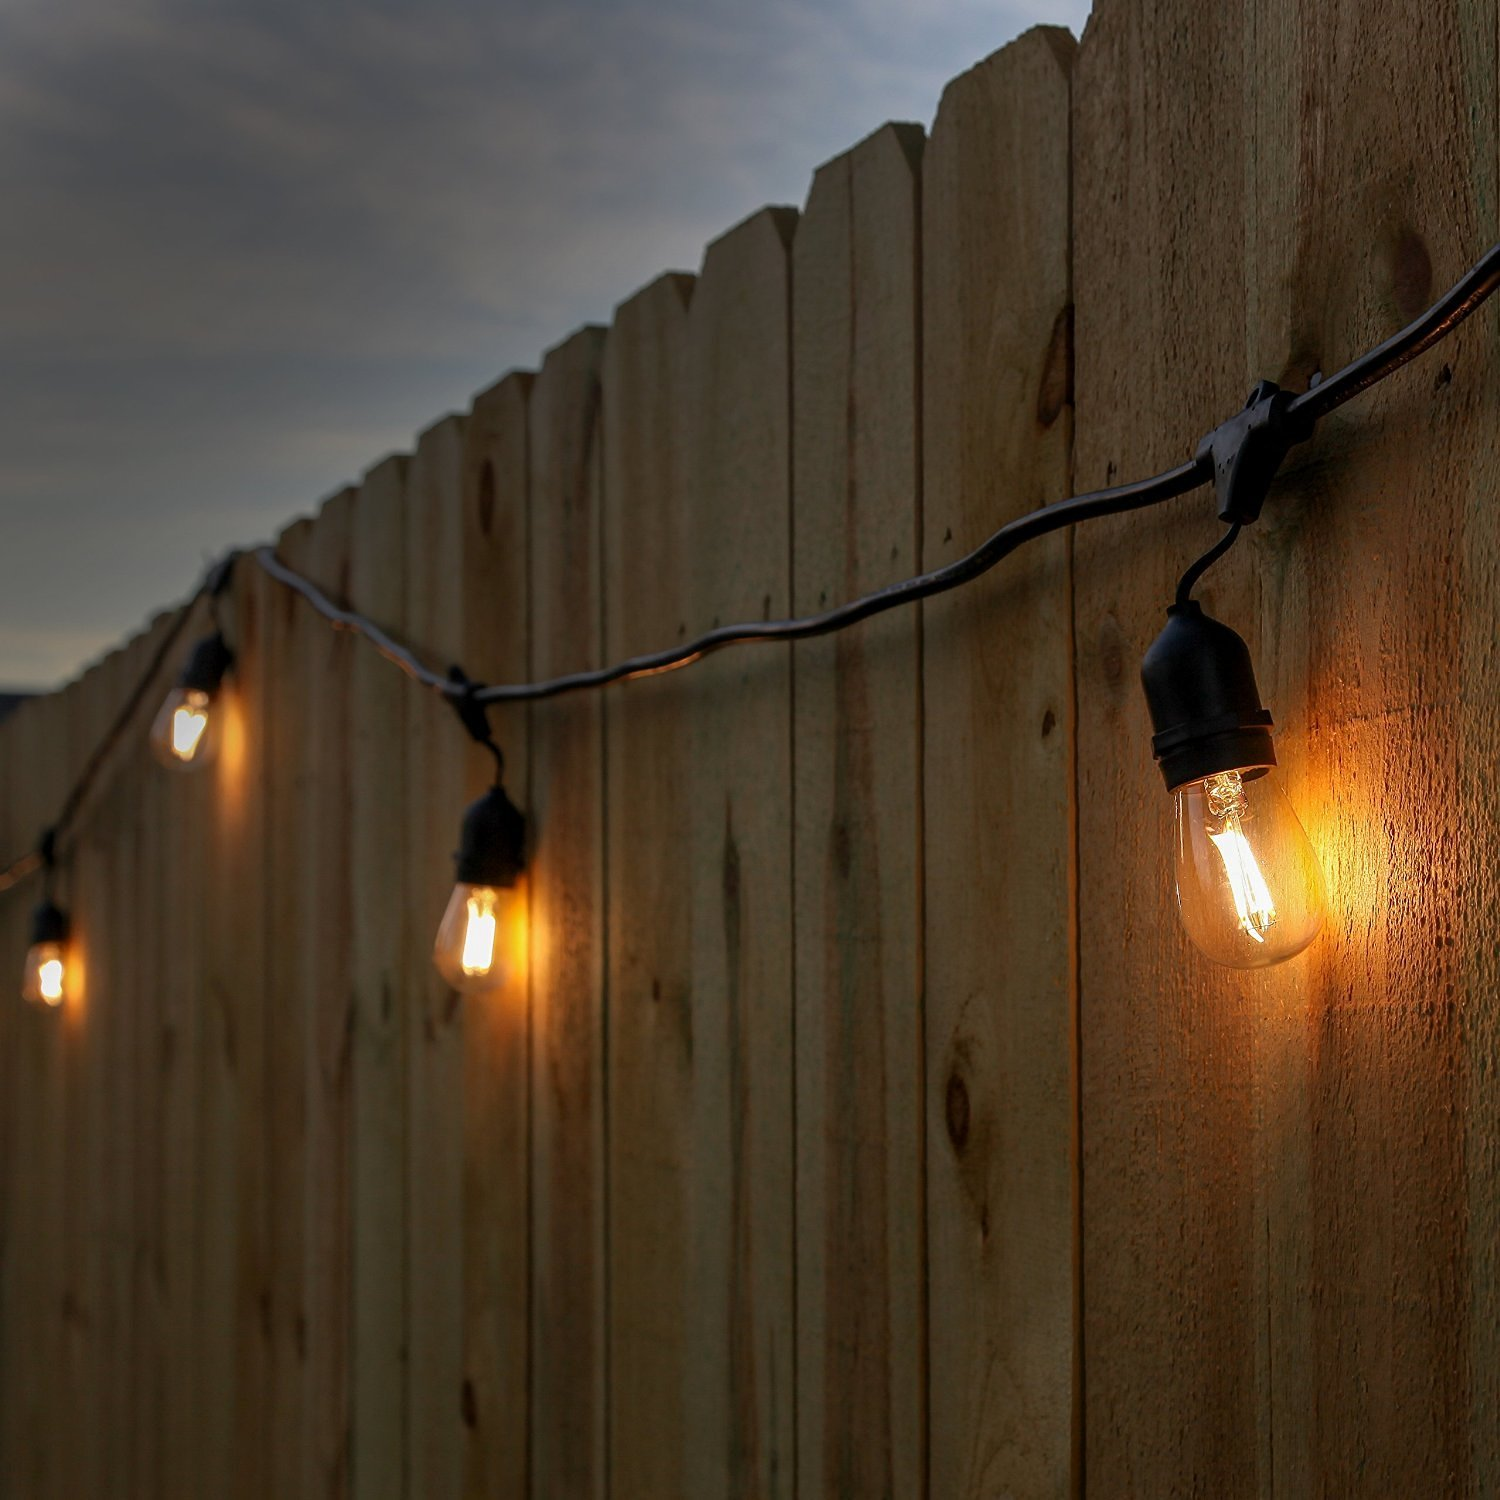 Led String Lights For Patio Newhouse lighting 48 foot outdoor string lights led bulbs included newhouse lighting outdoor weatherproof commercial grade led string lights with hanging sockets weatherproof technology 18 2w s14 led filament light workwithnaturefo